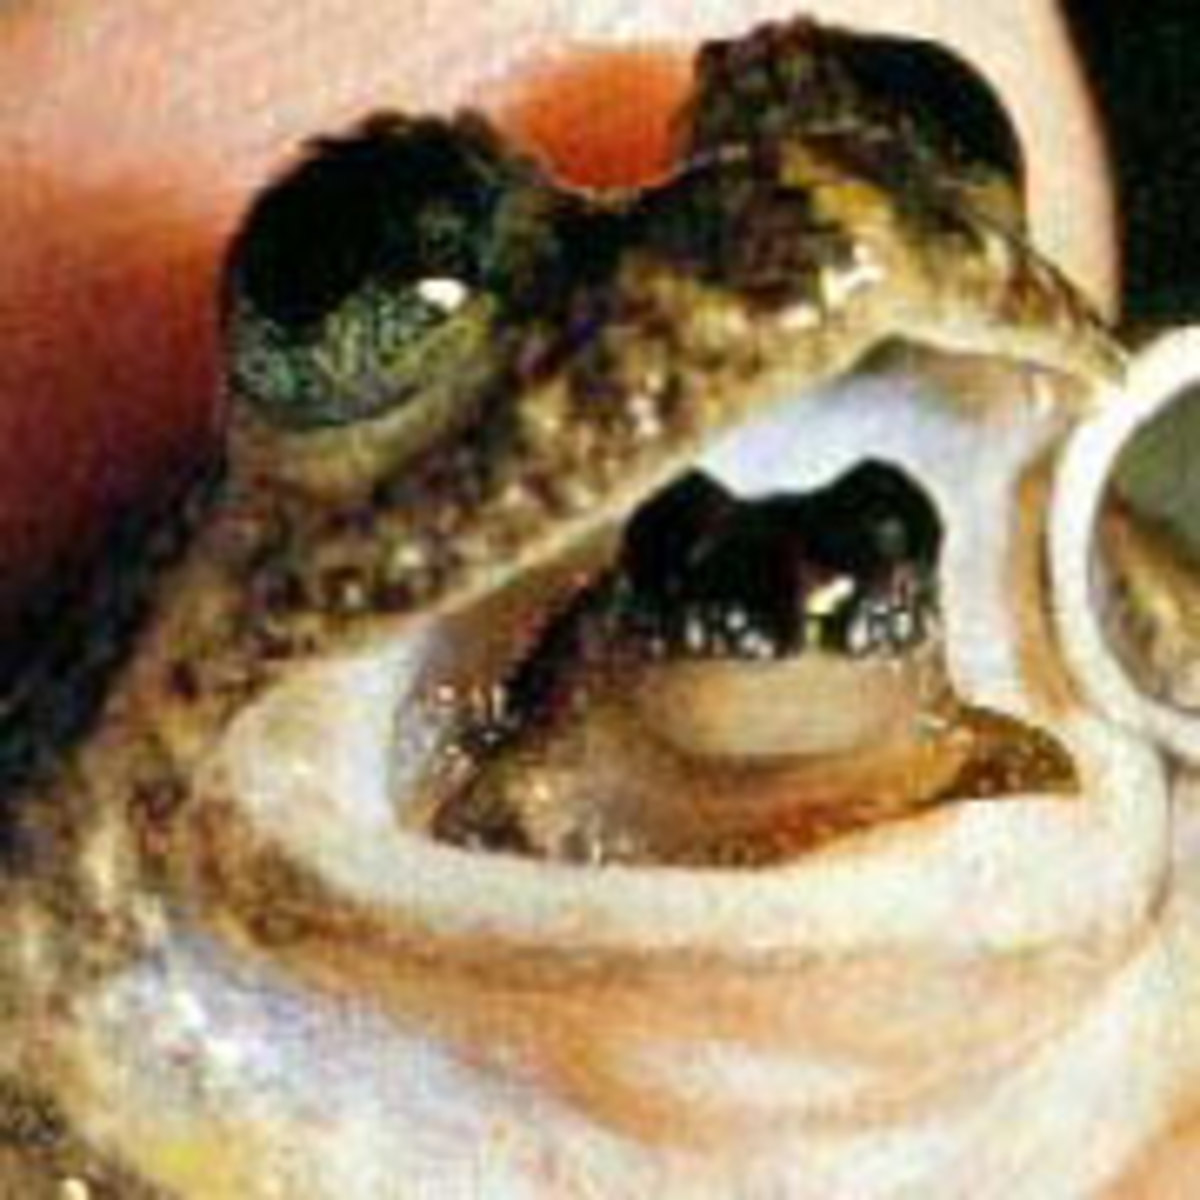 Darwin frog and his baby